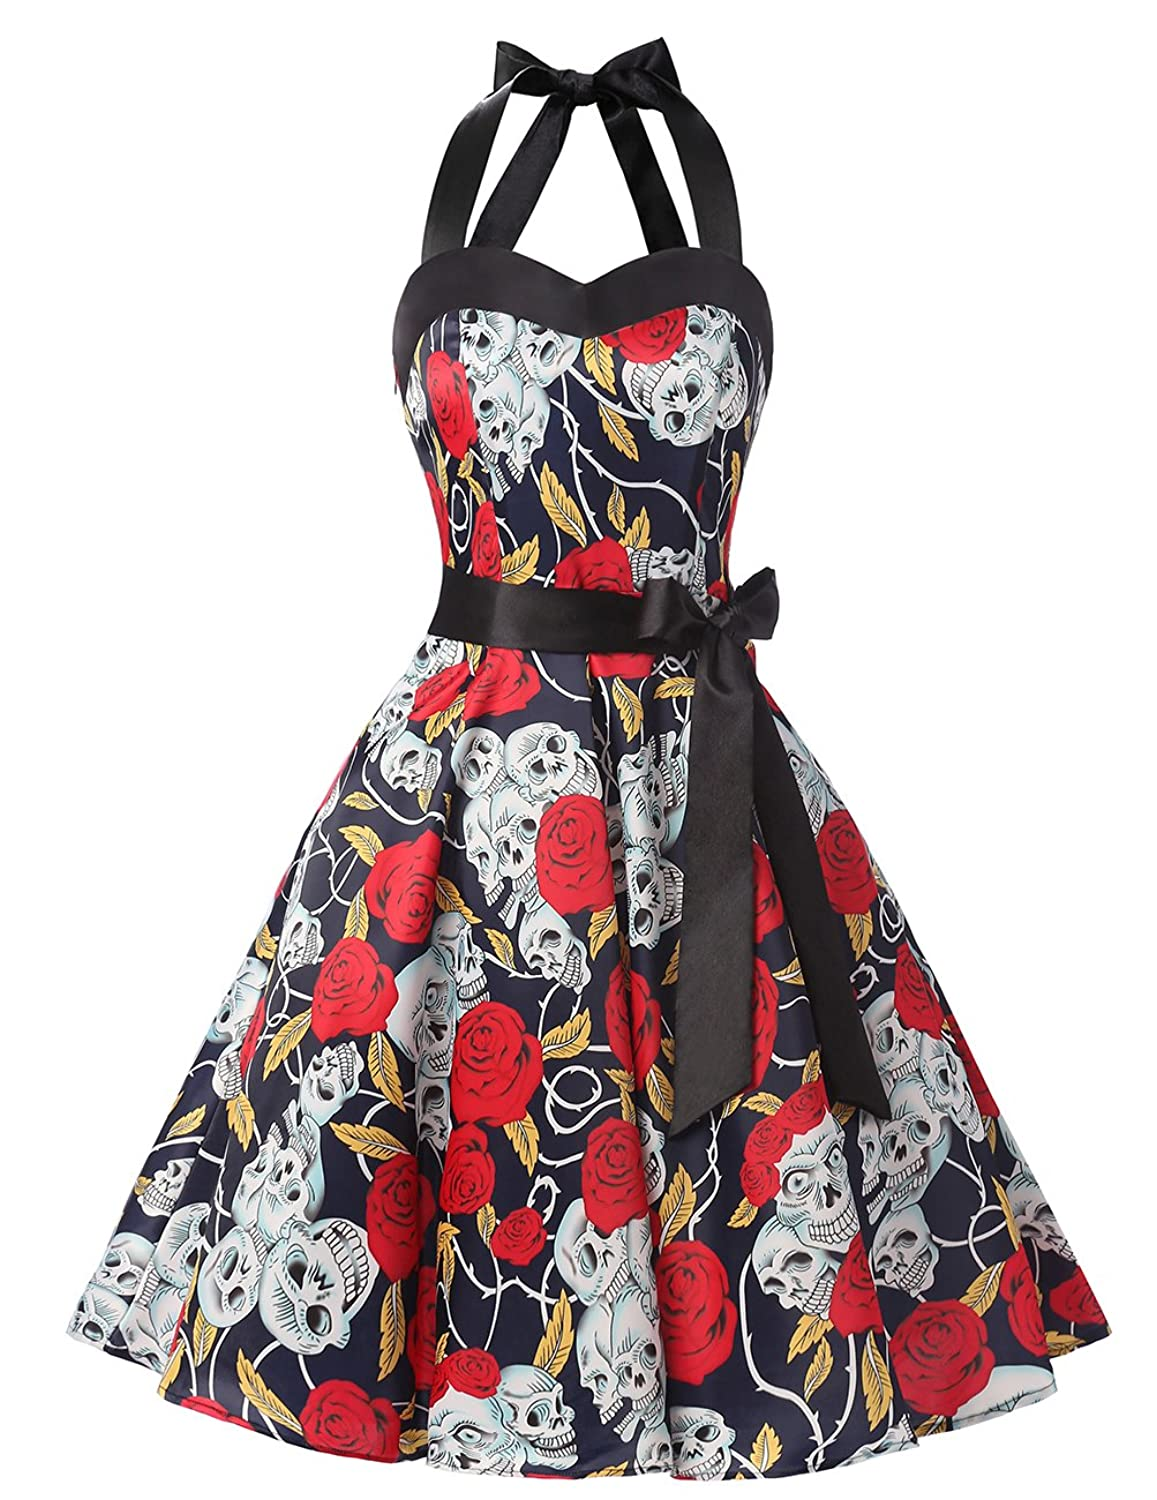 Dresstells Halter 1950s Rockabilly Polka Dots Audrey Dress Retro Cocktail Dress